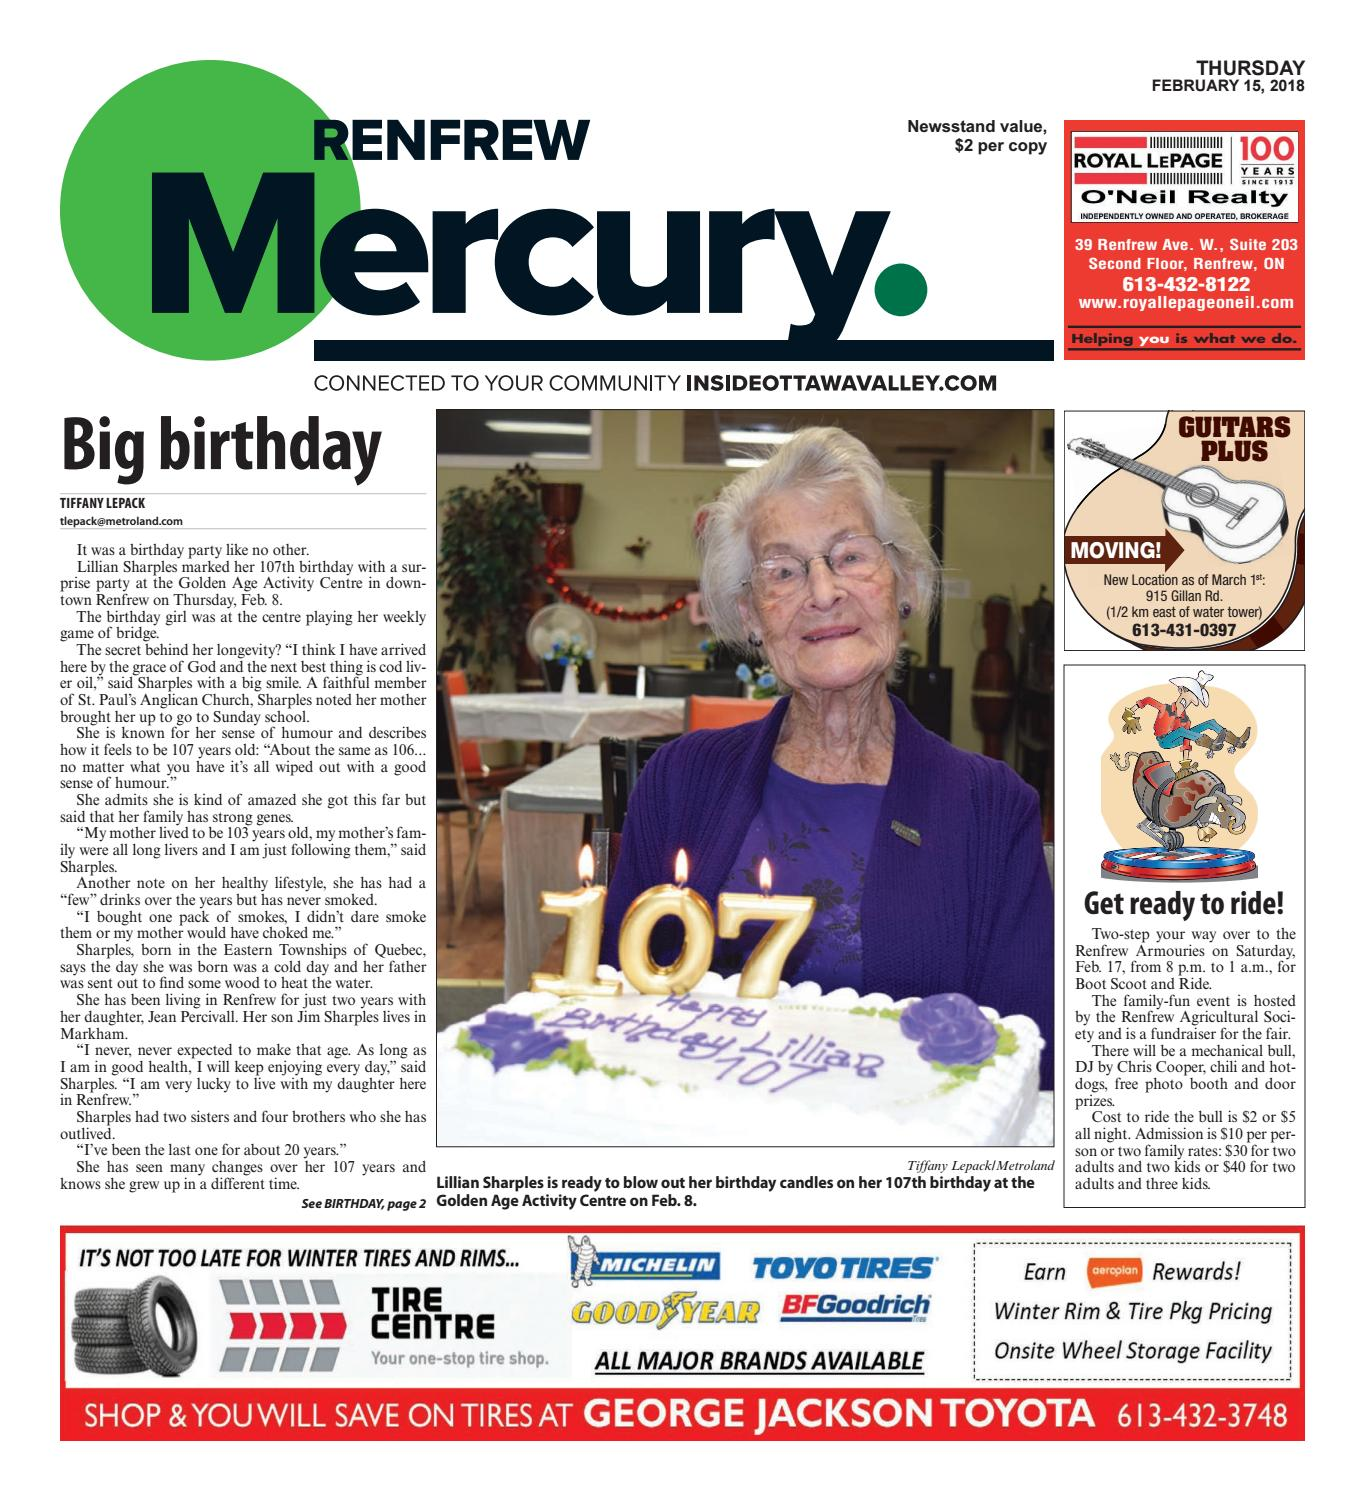 Renfrew021518 by Metroland East - Renfrew Mercury - issuu 30f41c8615a2